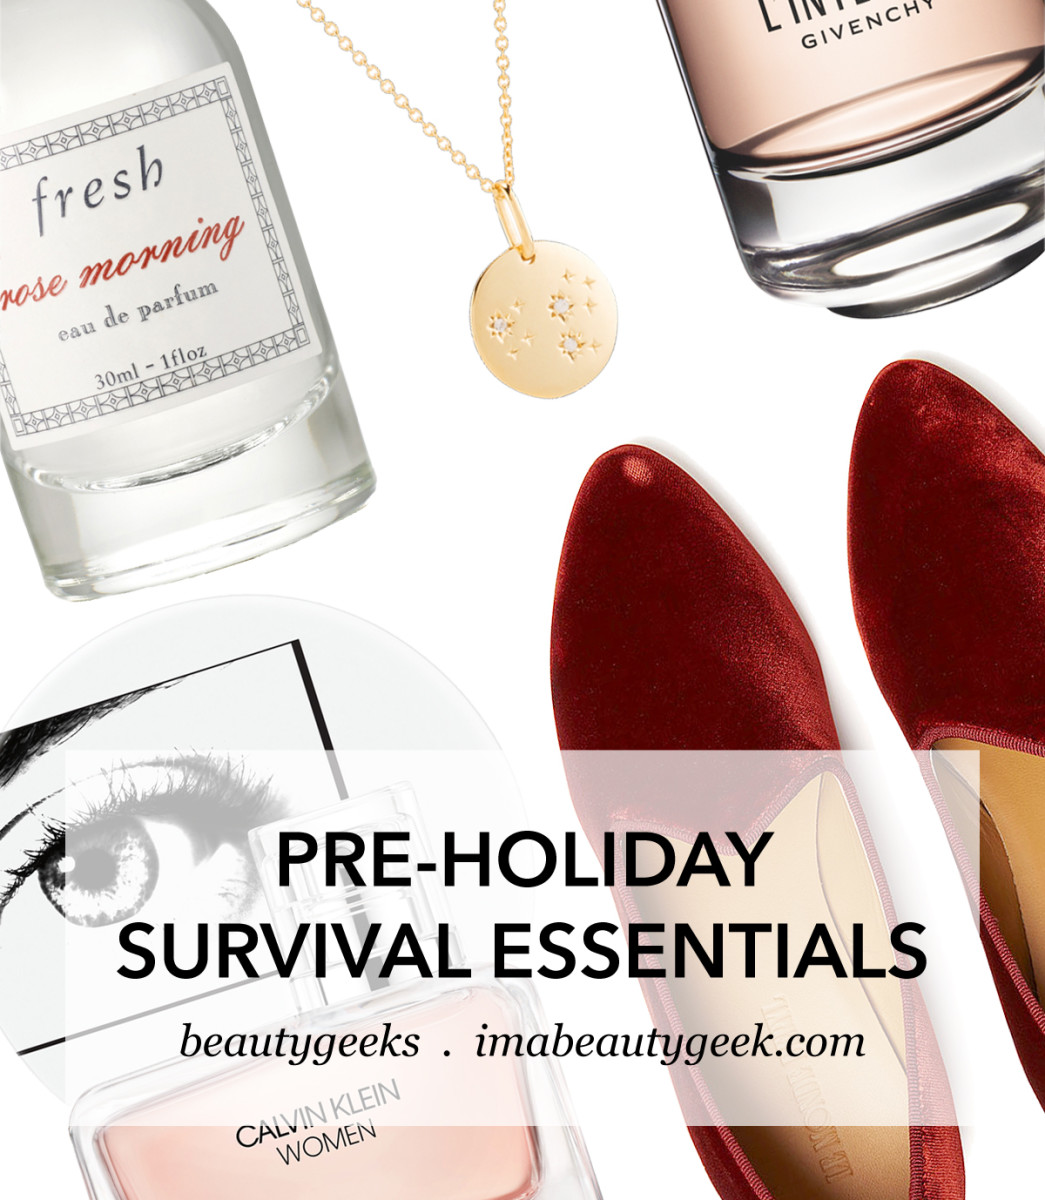 Pre-Holiday Survival Kit Essentials_red shoes promo image